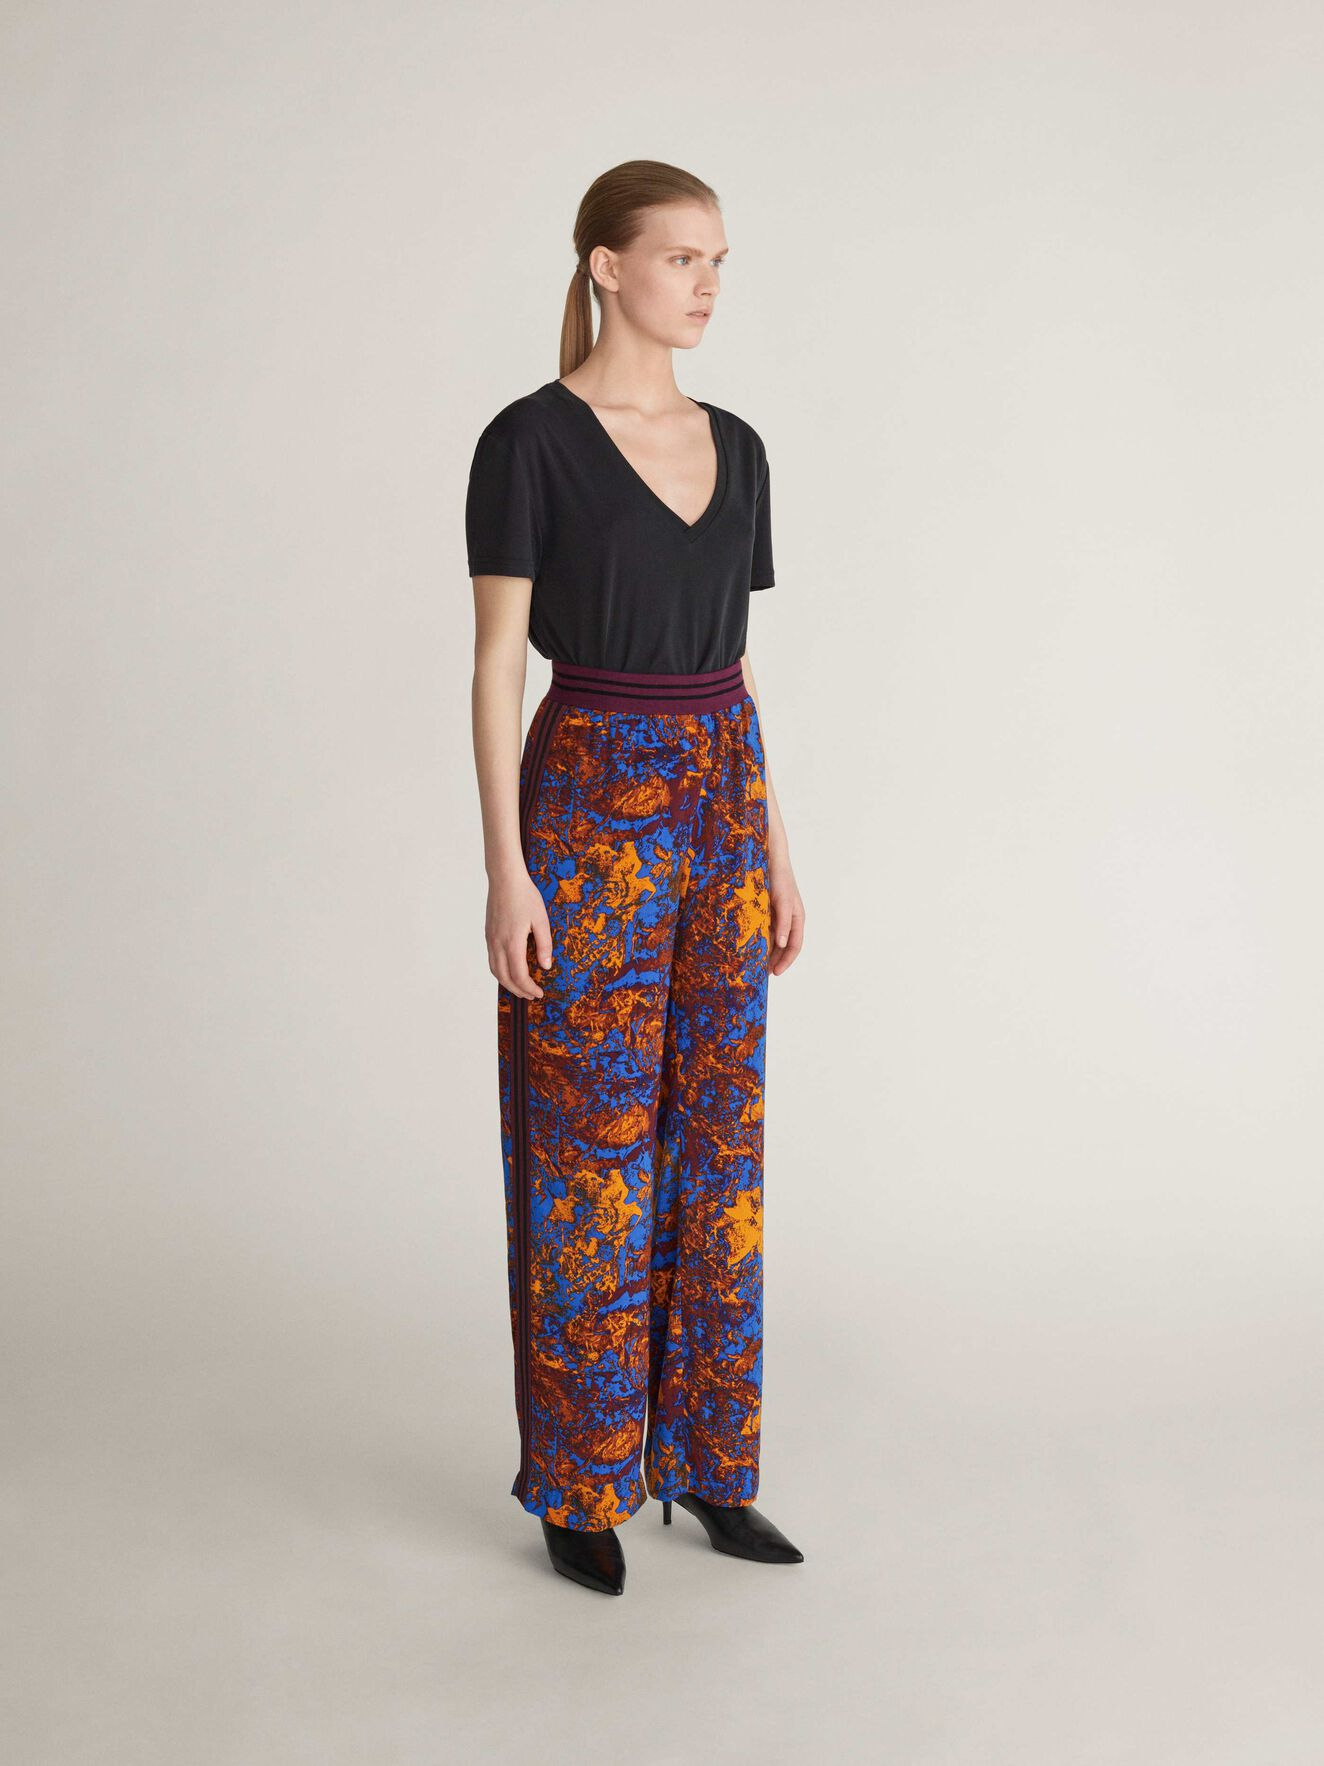 Daisy Trousers in Pattern from Tiger of Sweden